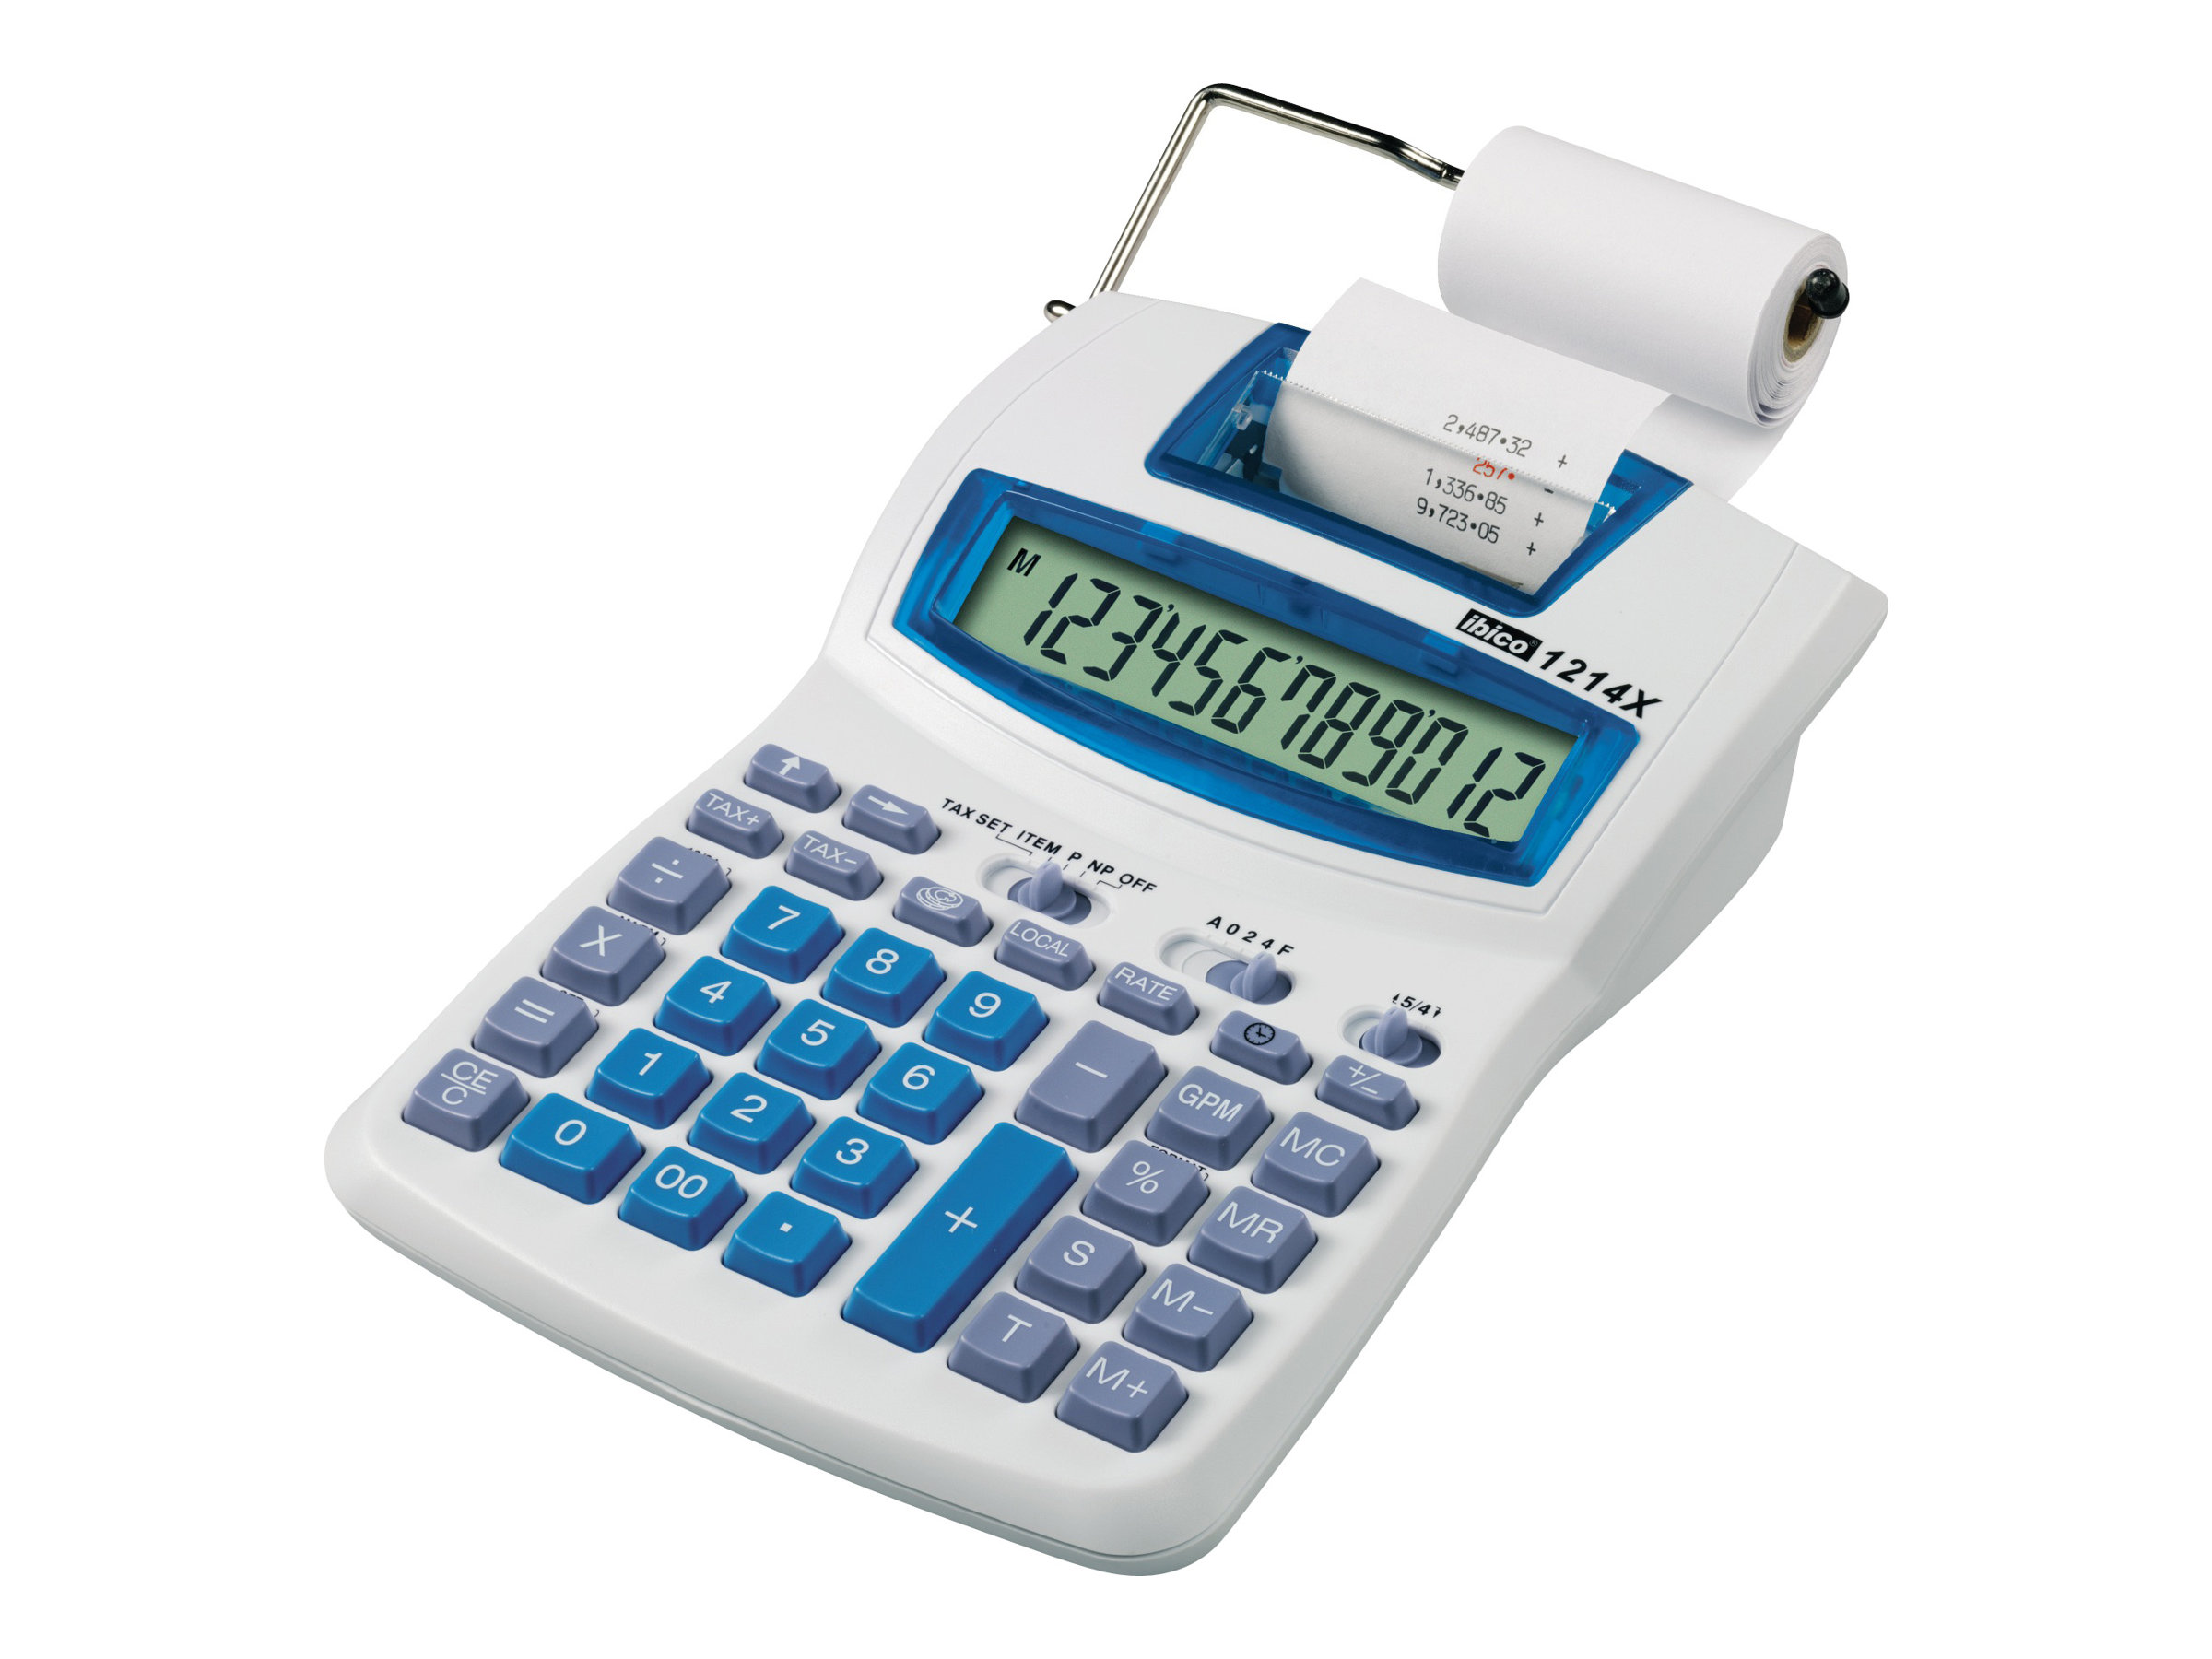 rexel ibico semi professional 1214x calculatrice avec imprimante calculatrices imprimante et. Black Bedroom Furniture Sets. Home Design Ideas